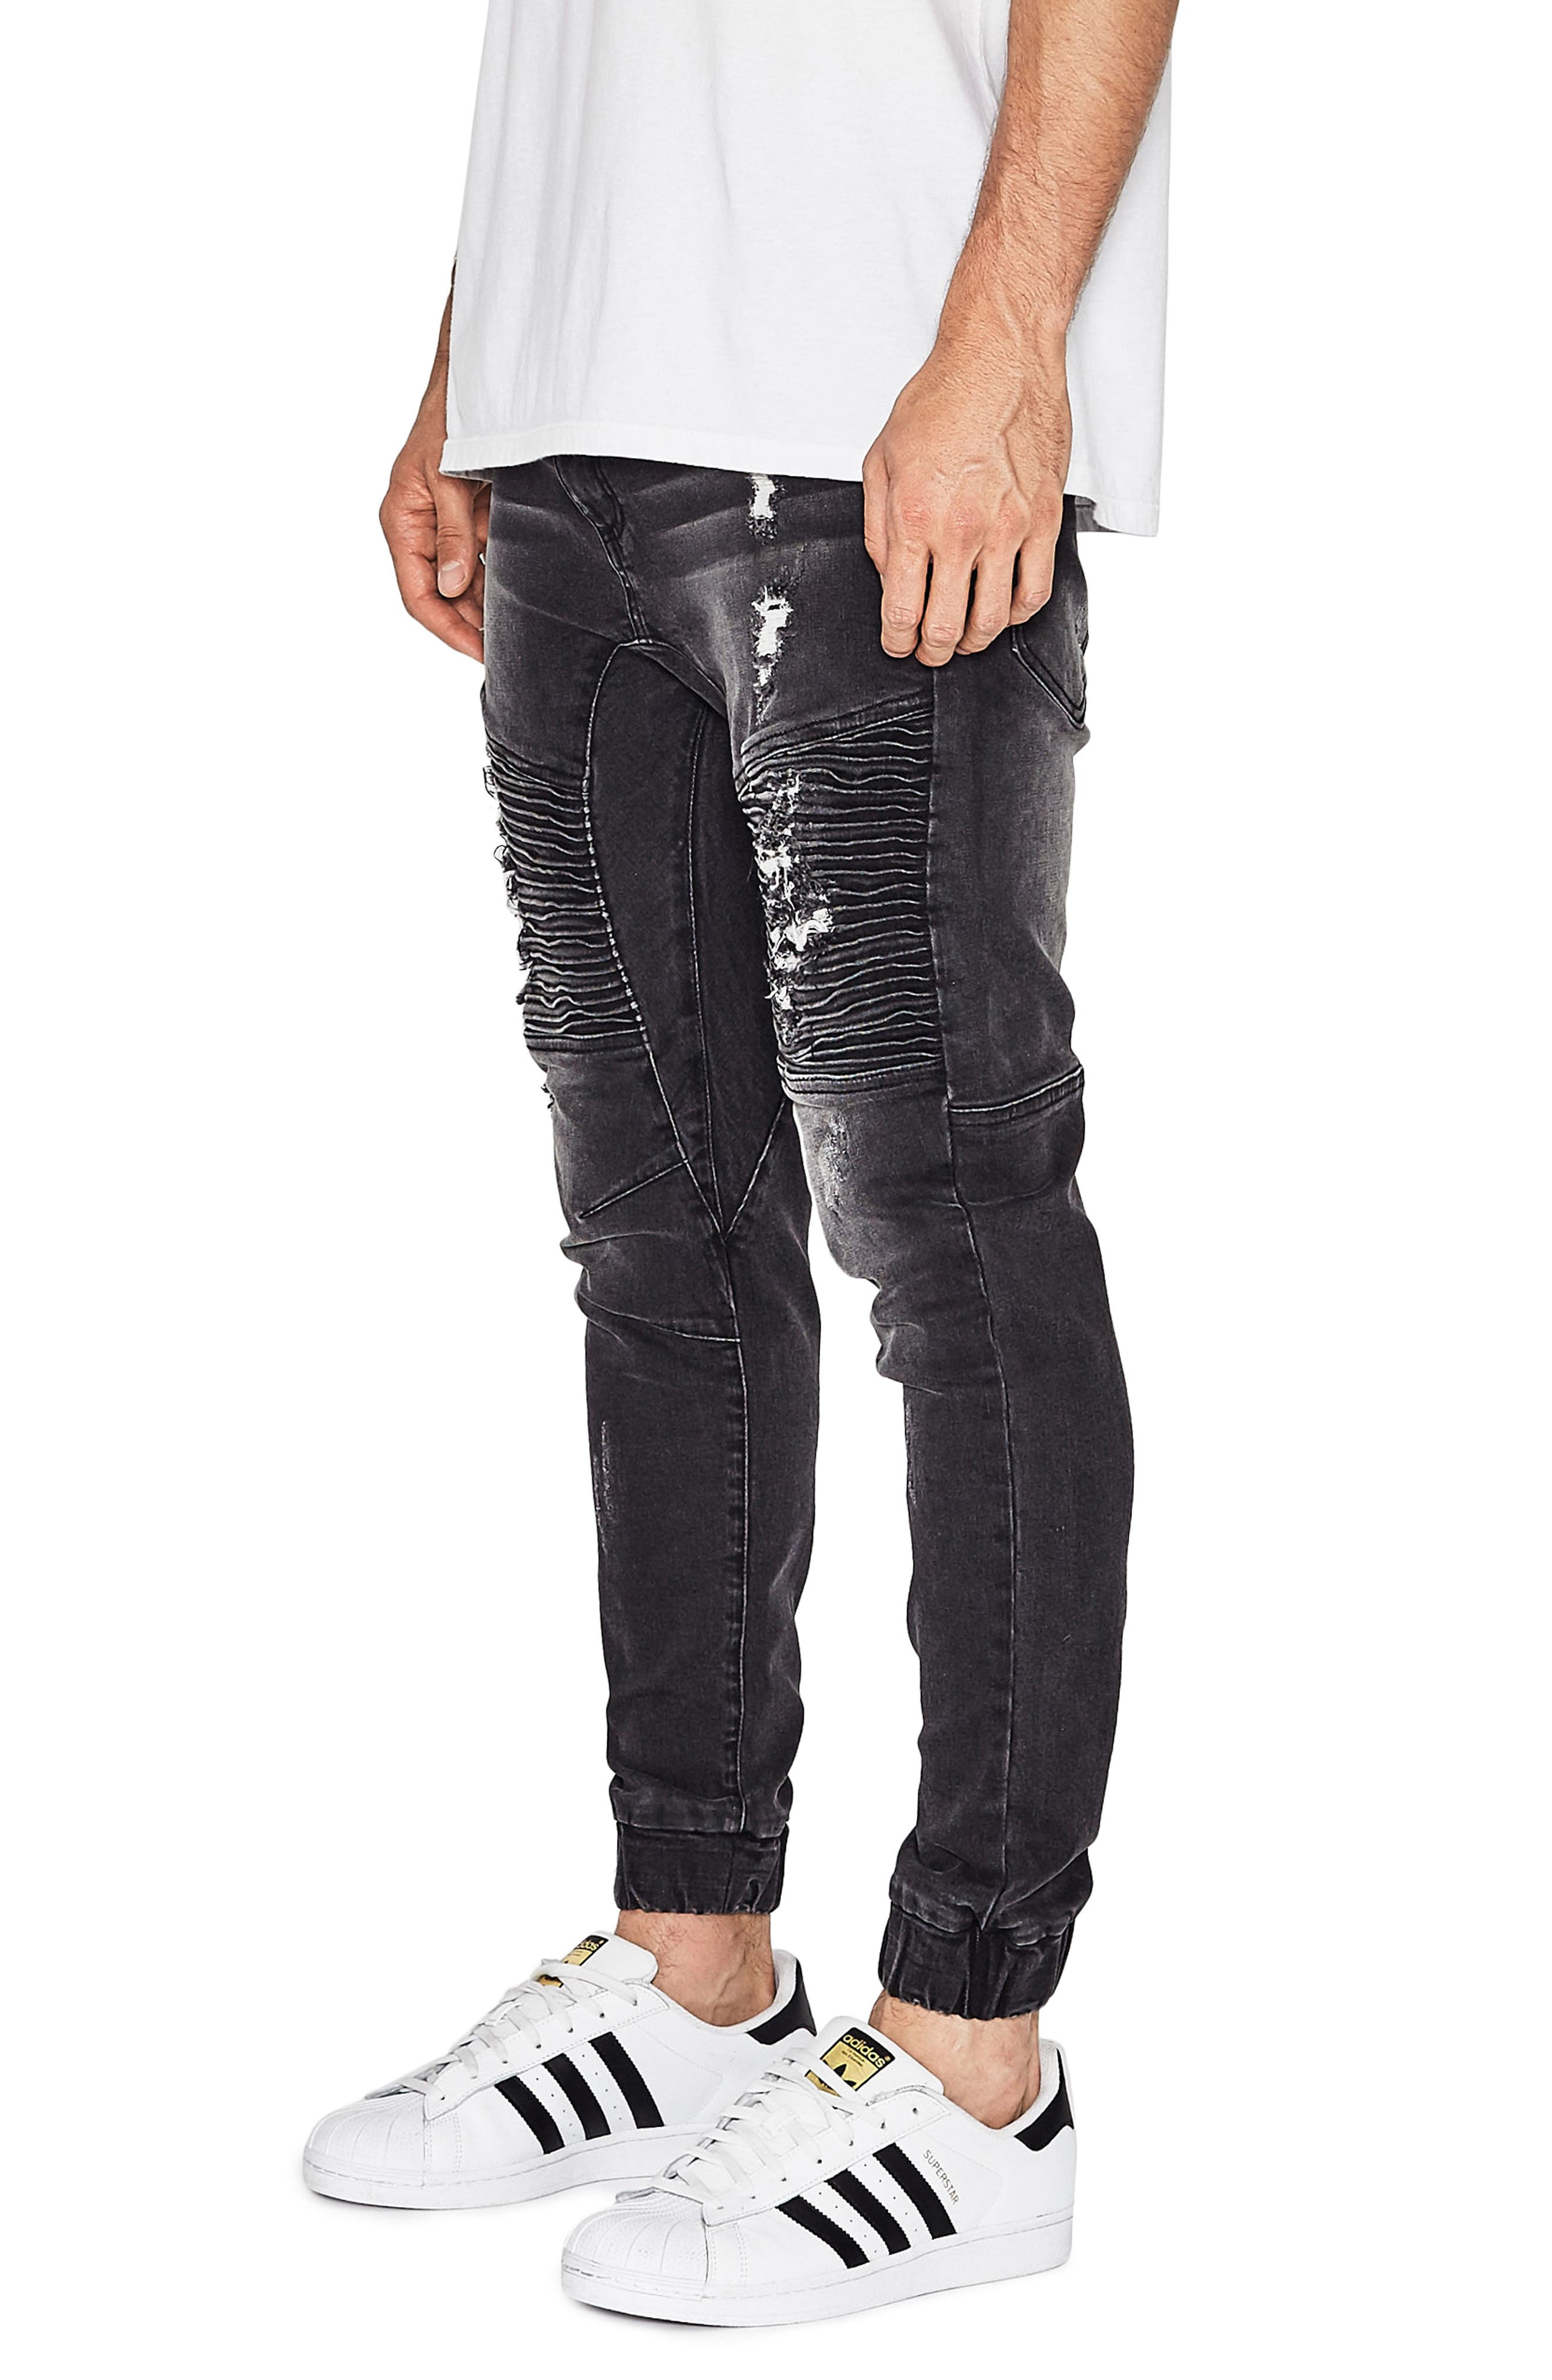 Destroyer Moto Denim Jogger Pants,                             Alternate thumbnail 3, color,                             014